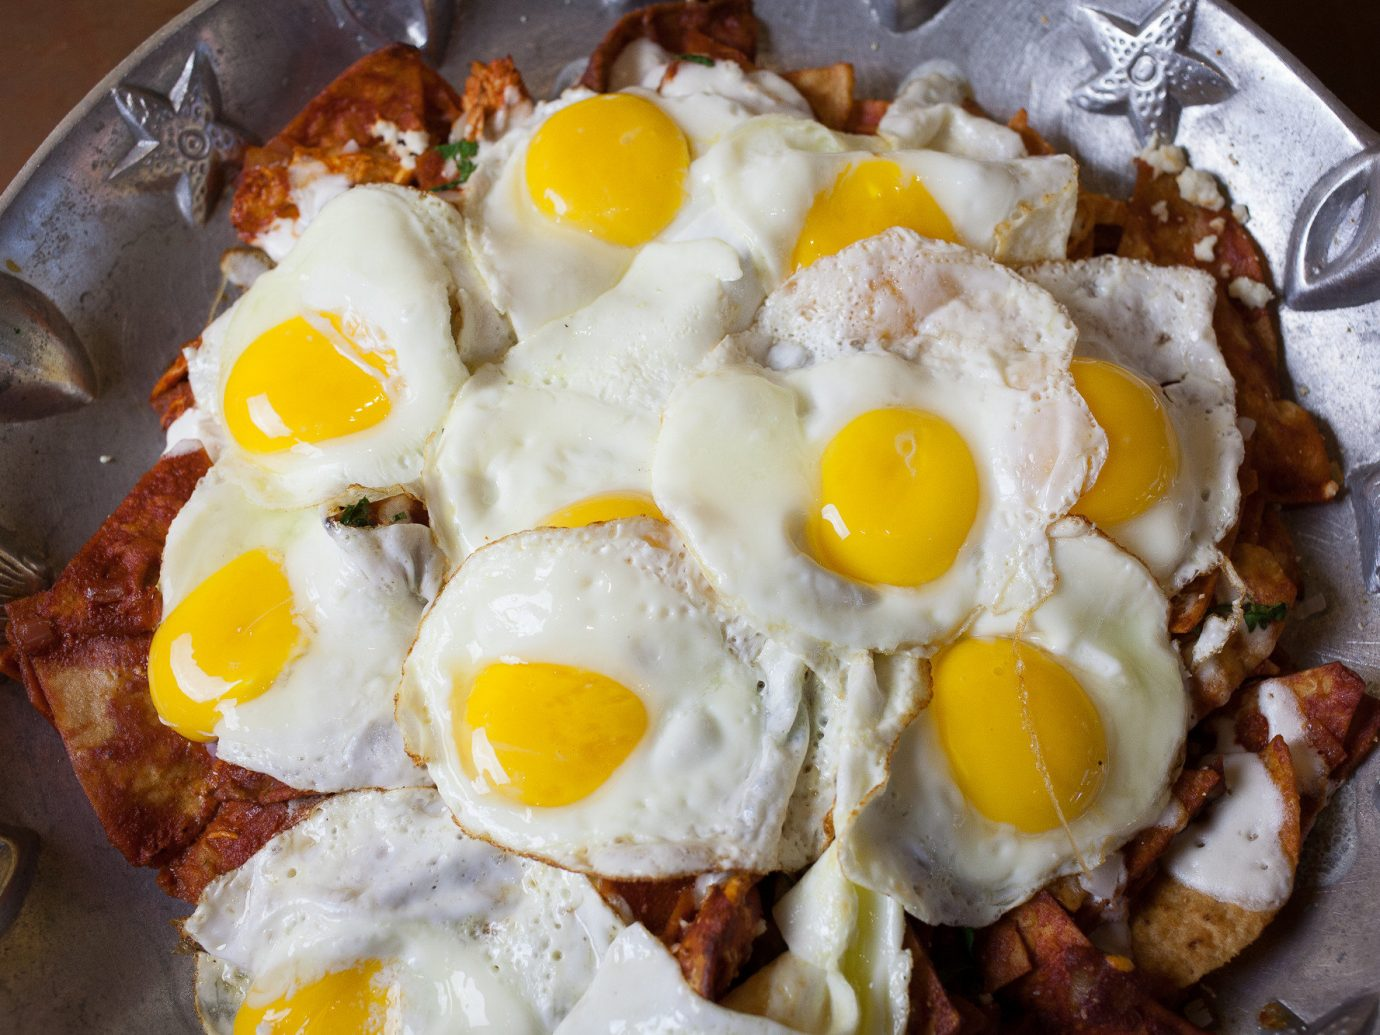 Food + Drink fried egg food dish ice meal bacon and eggs indoor plate breakfast shirred egg cream meat brunch egg produce cuisine full breakfast poached egg animal source foods dessert